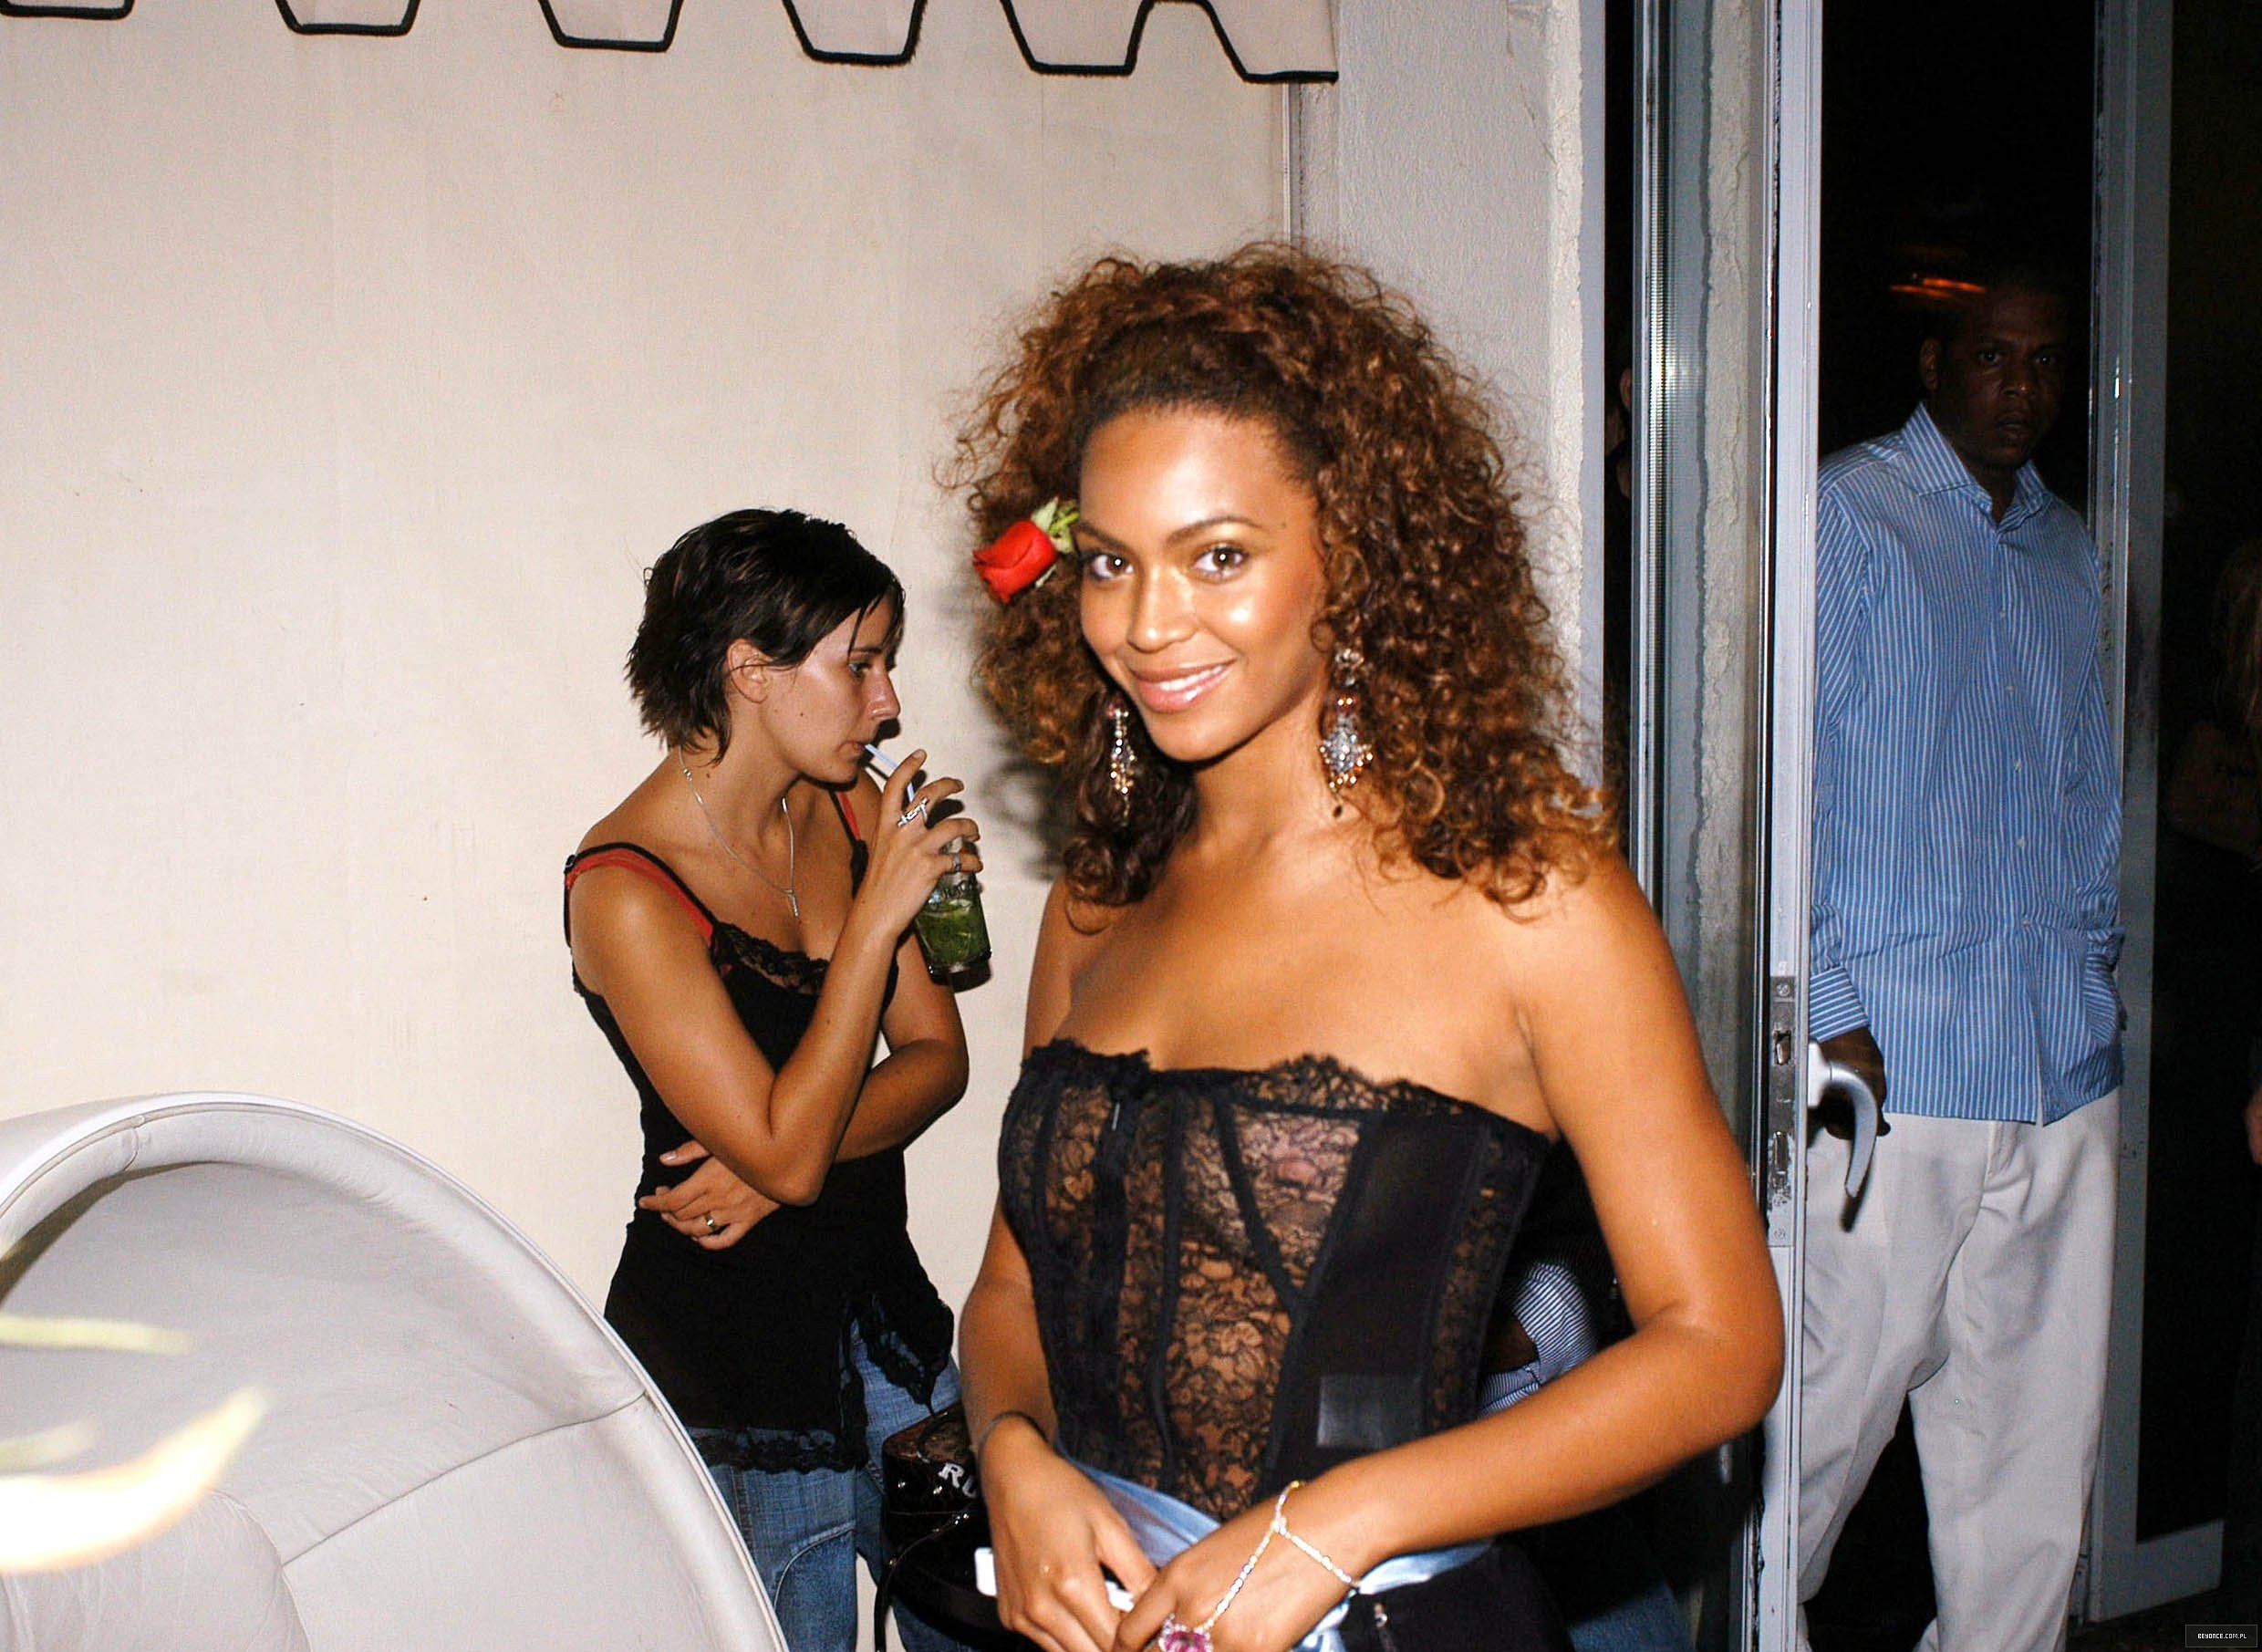 Beyonce See Through St Tropez 1 TheFappening.nu